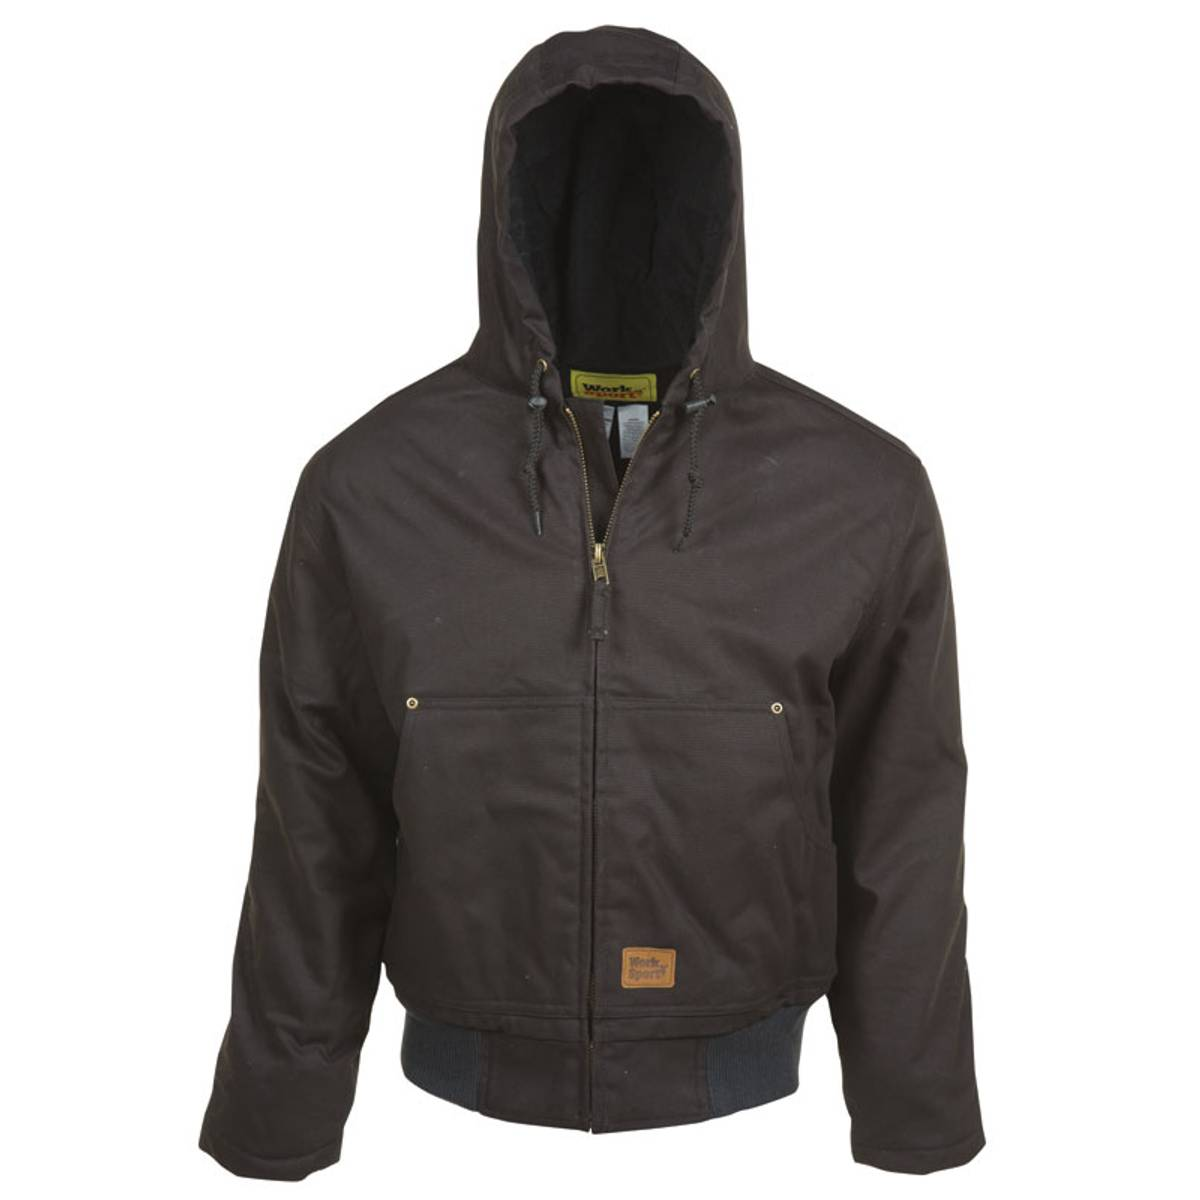 Timberland men's baluster work jacket